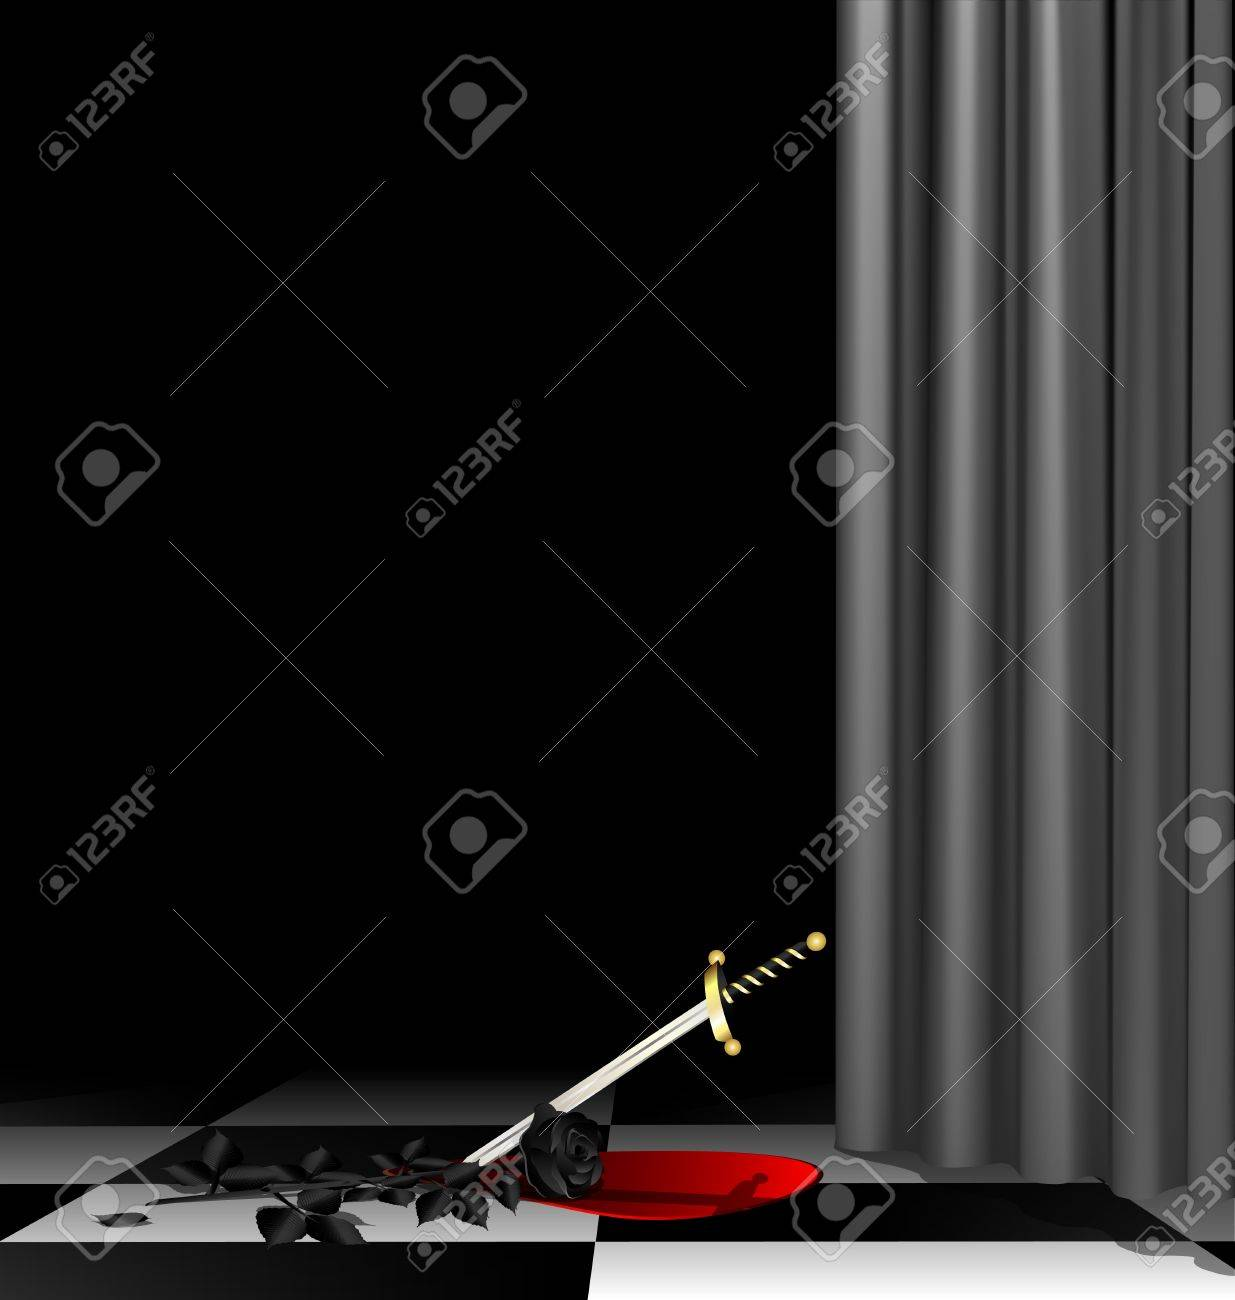 Mysterious Dark Room With A Black Rose A Dagger And The Blood